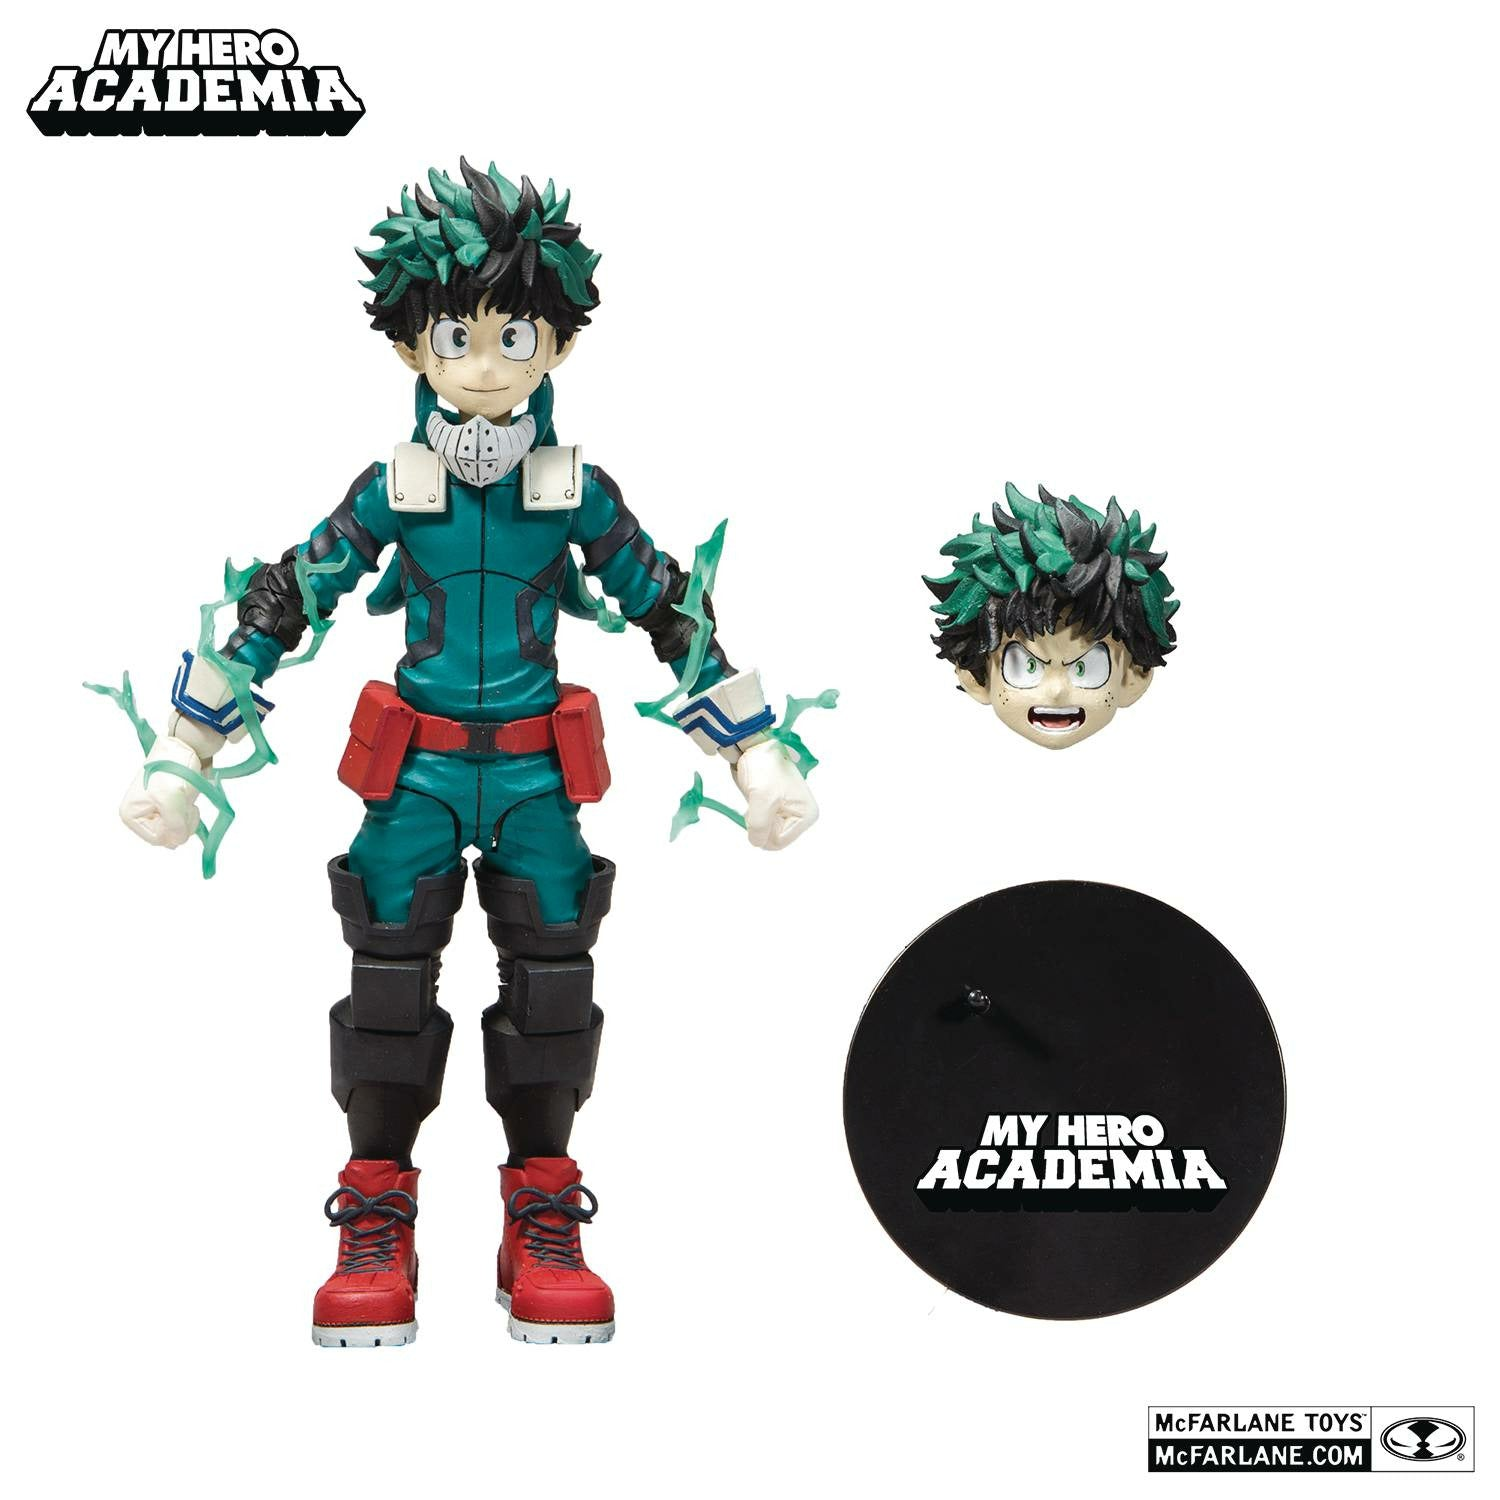 My Hero Academia Izuku Midoriya 7 inch Action Figure